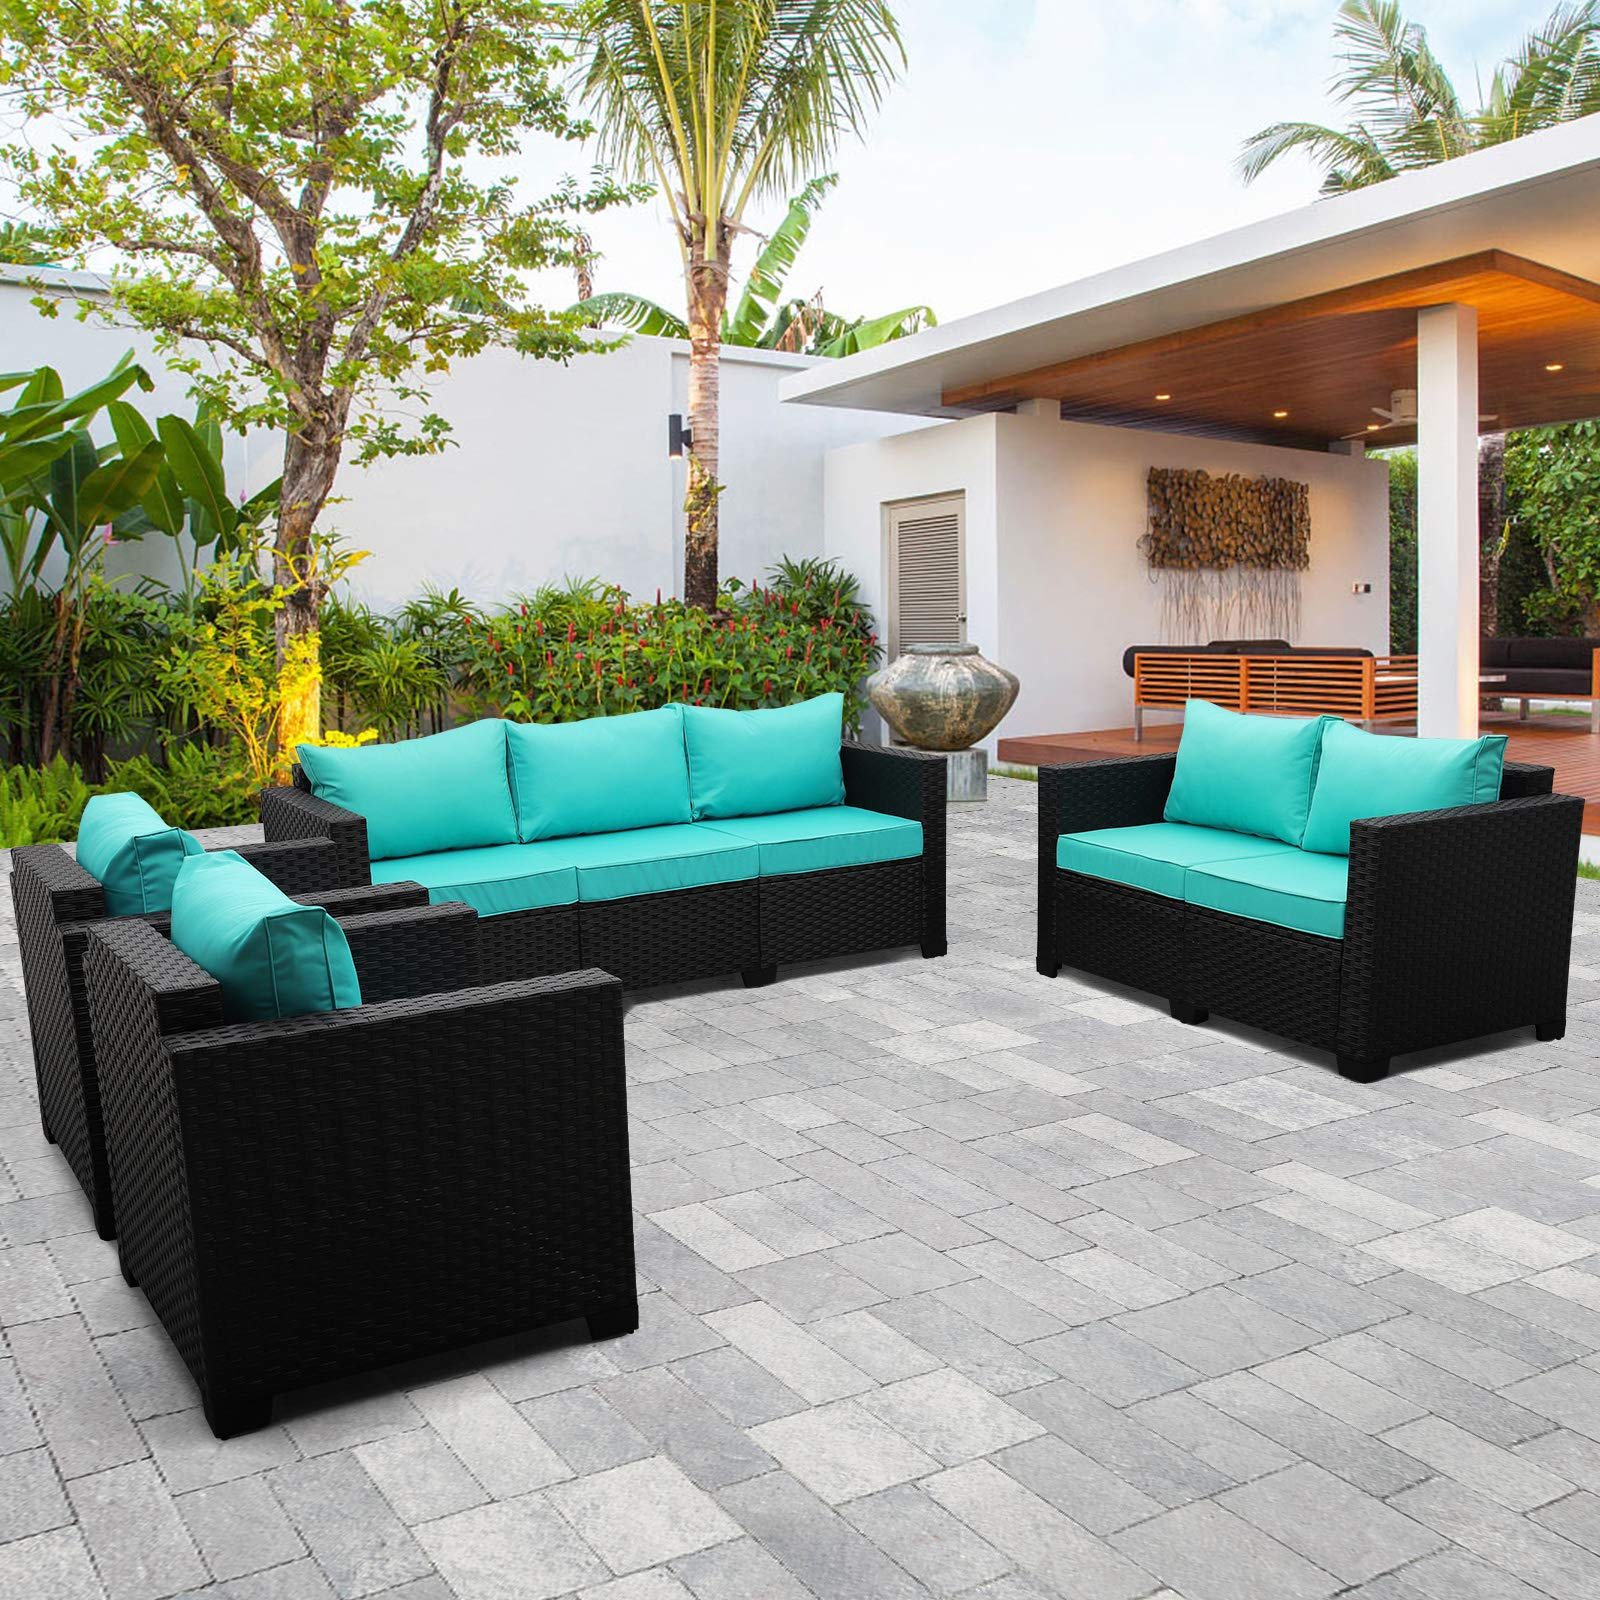 OutdoorWickerFurniture Set 4 Pieces, Patio Sectional Sofa Couch Set with Turquoise Cushions and Furniture Covers, Black ...